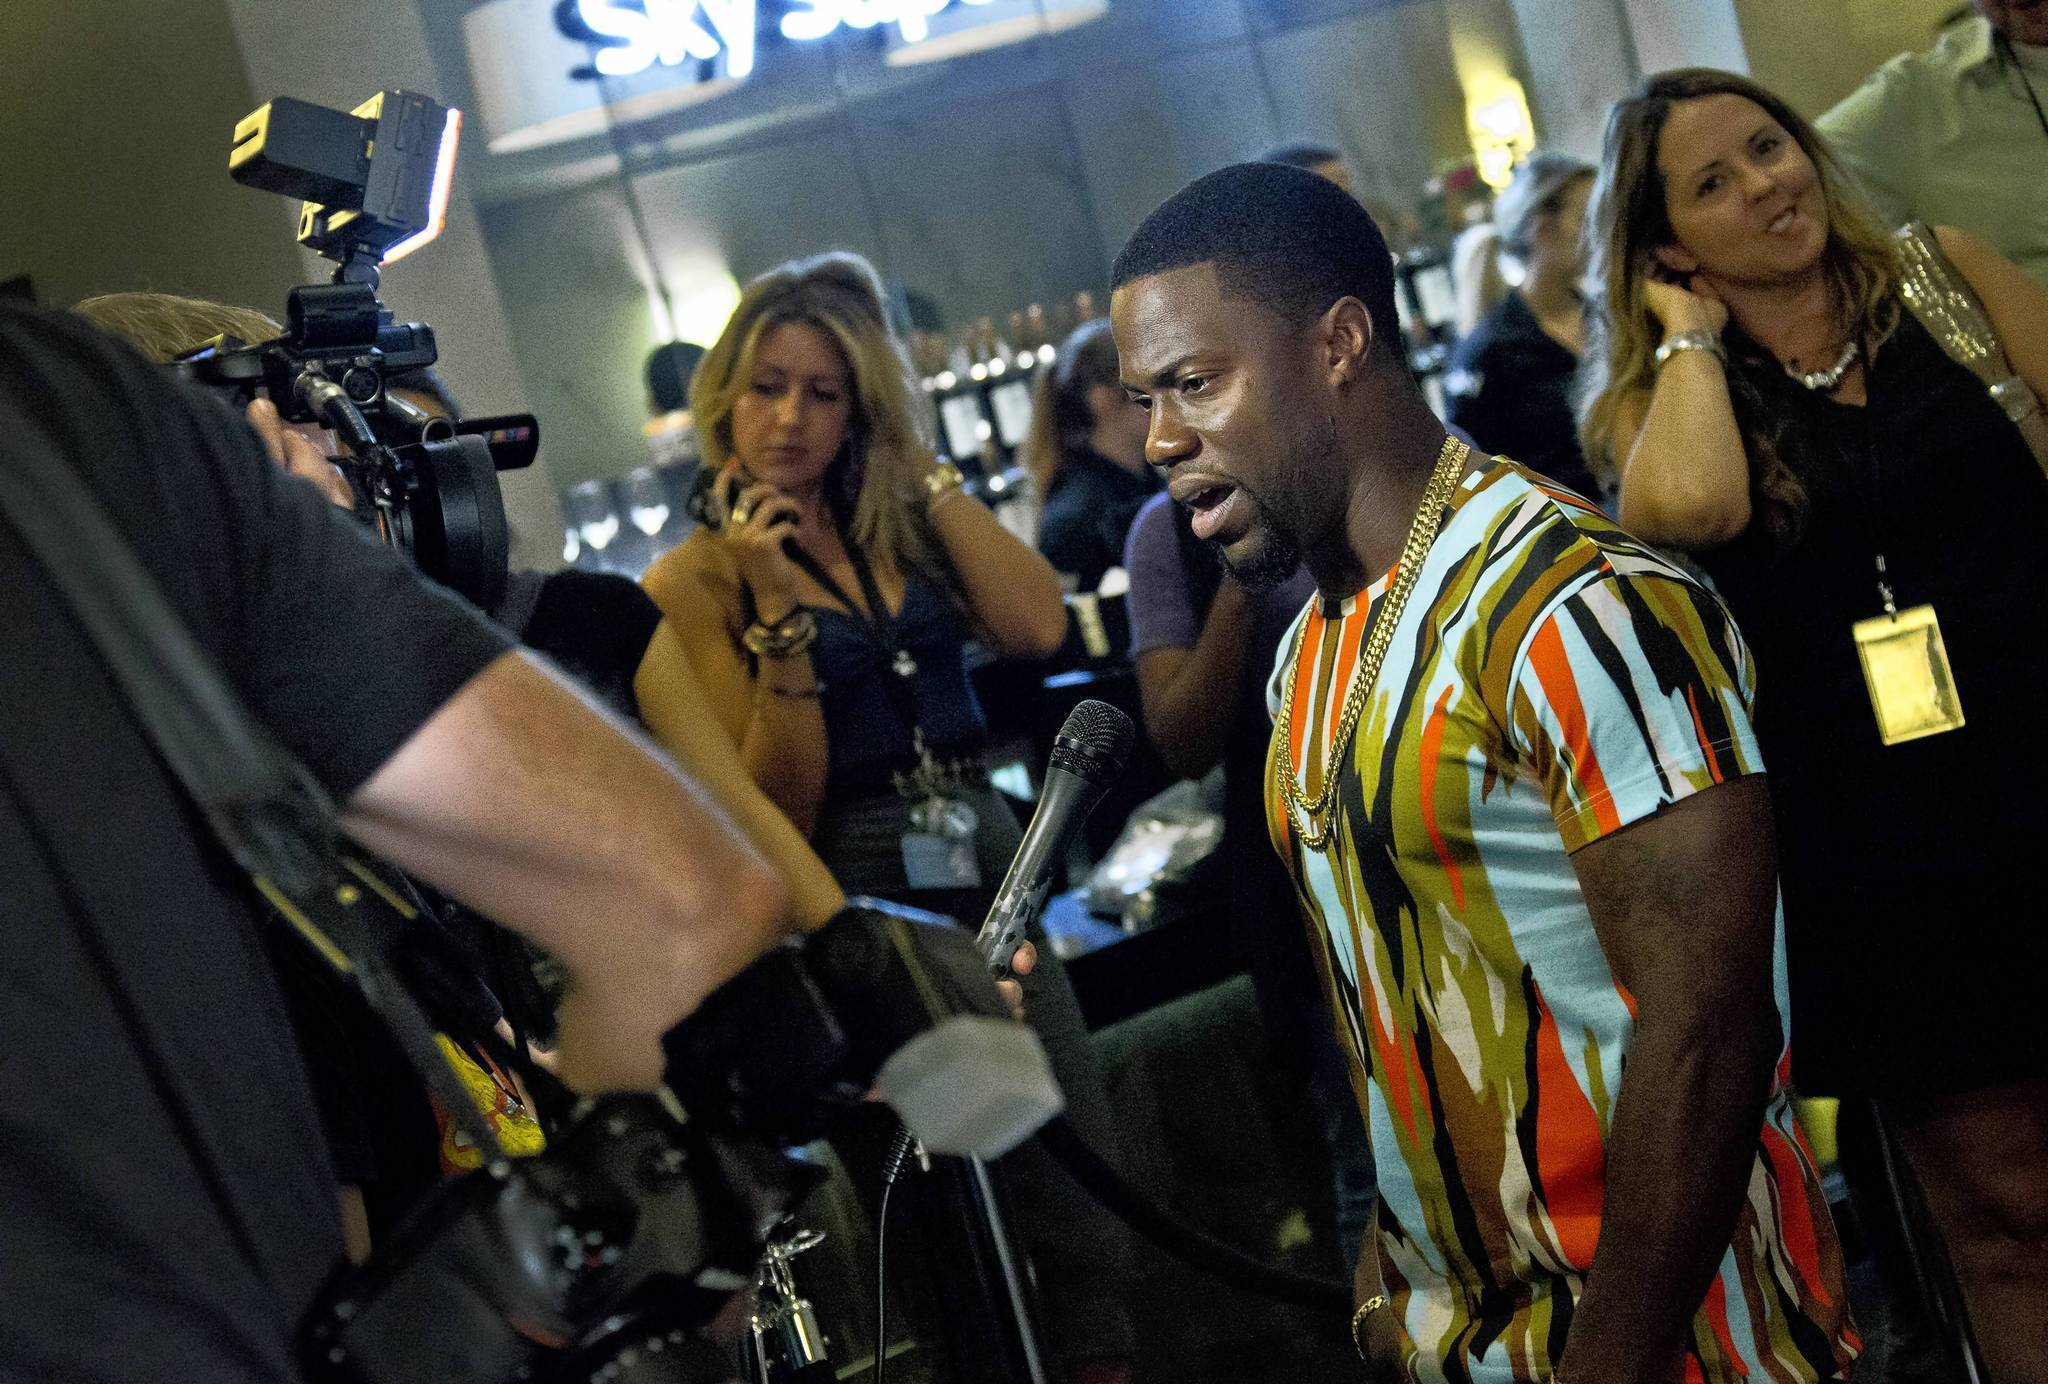 kevin hart filming comedy in la with help of state tax